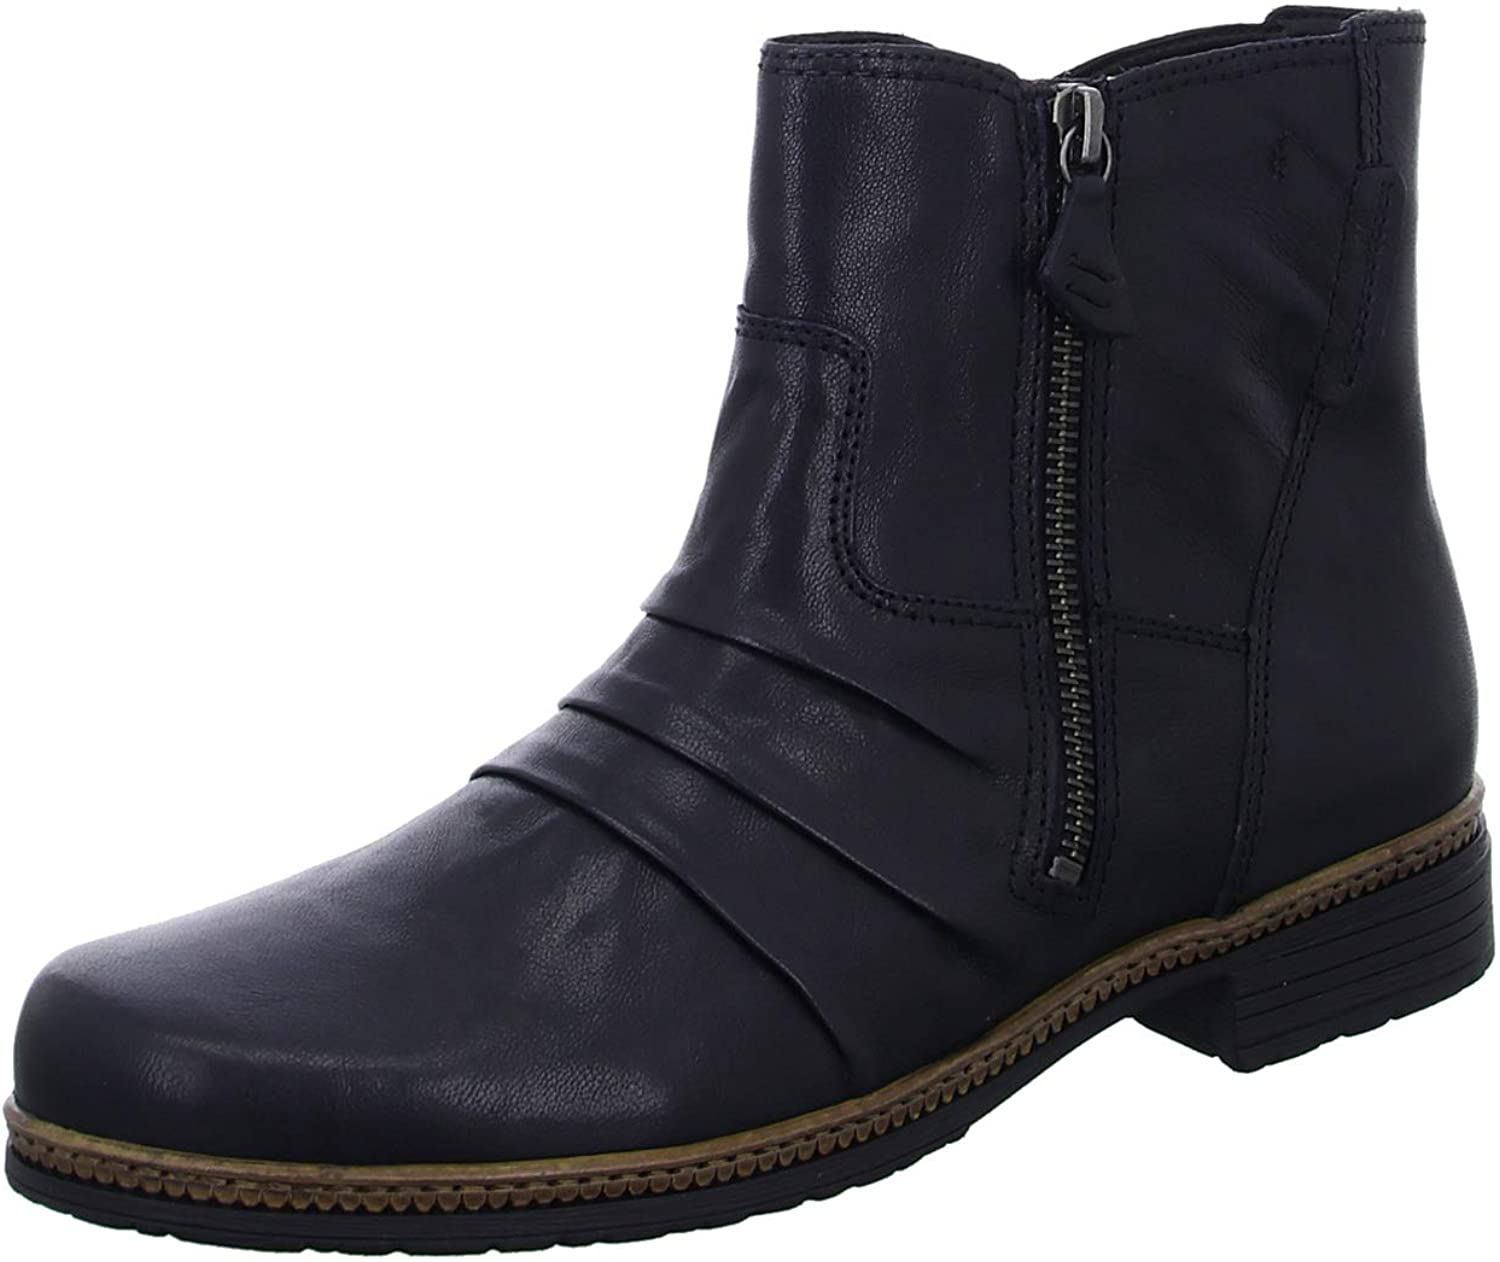 Gabor Women's Boots-34.671. Ankle Boots